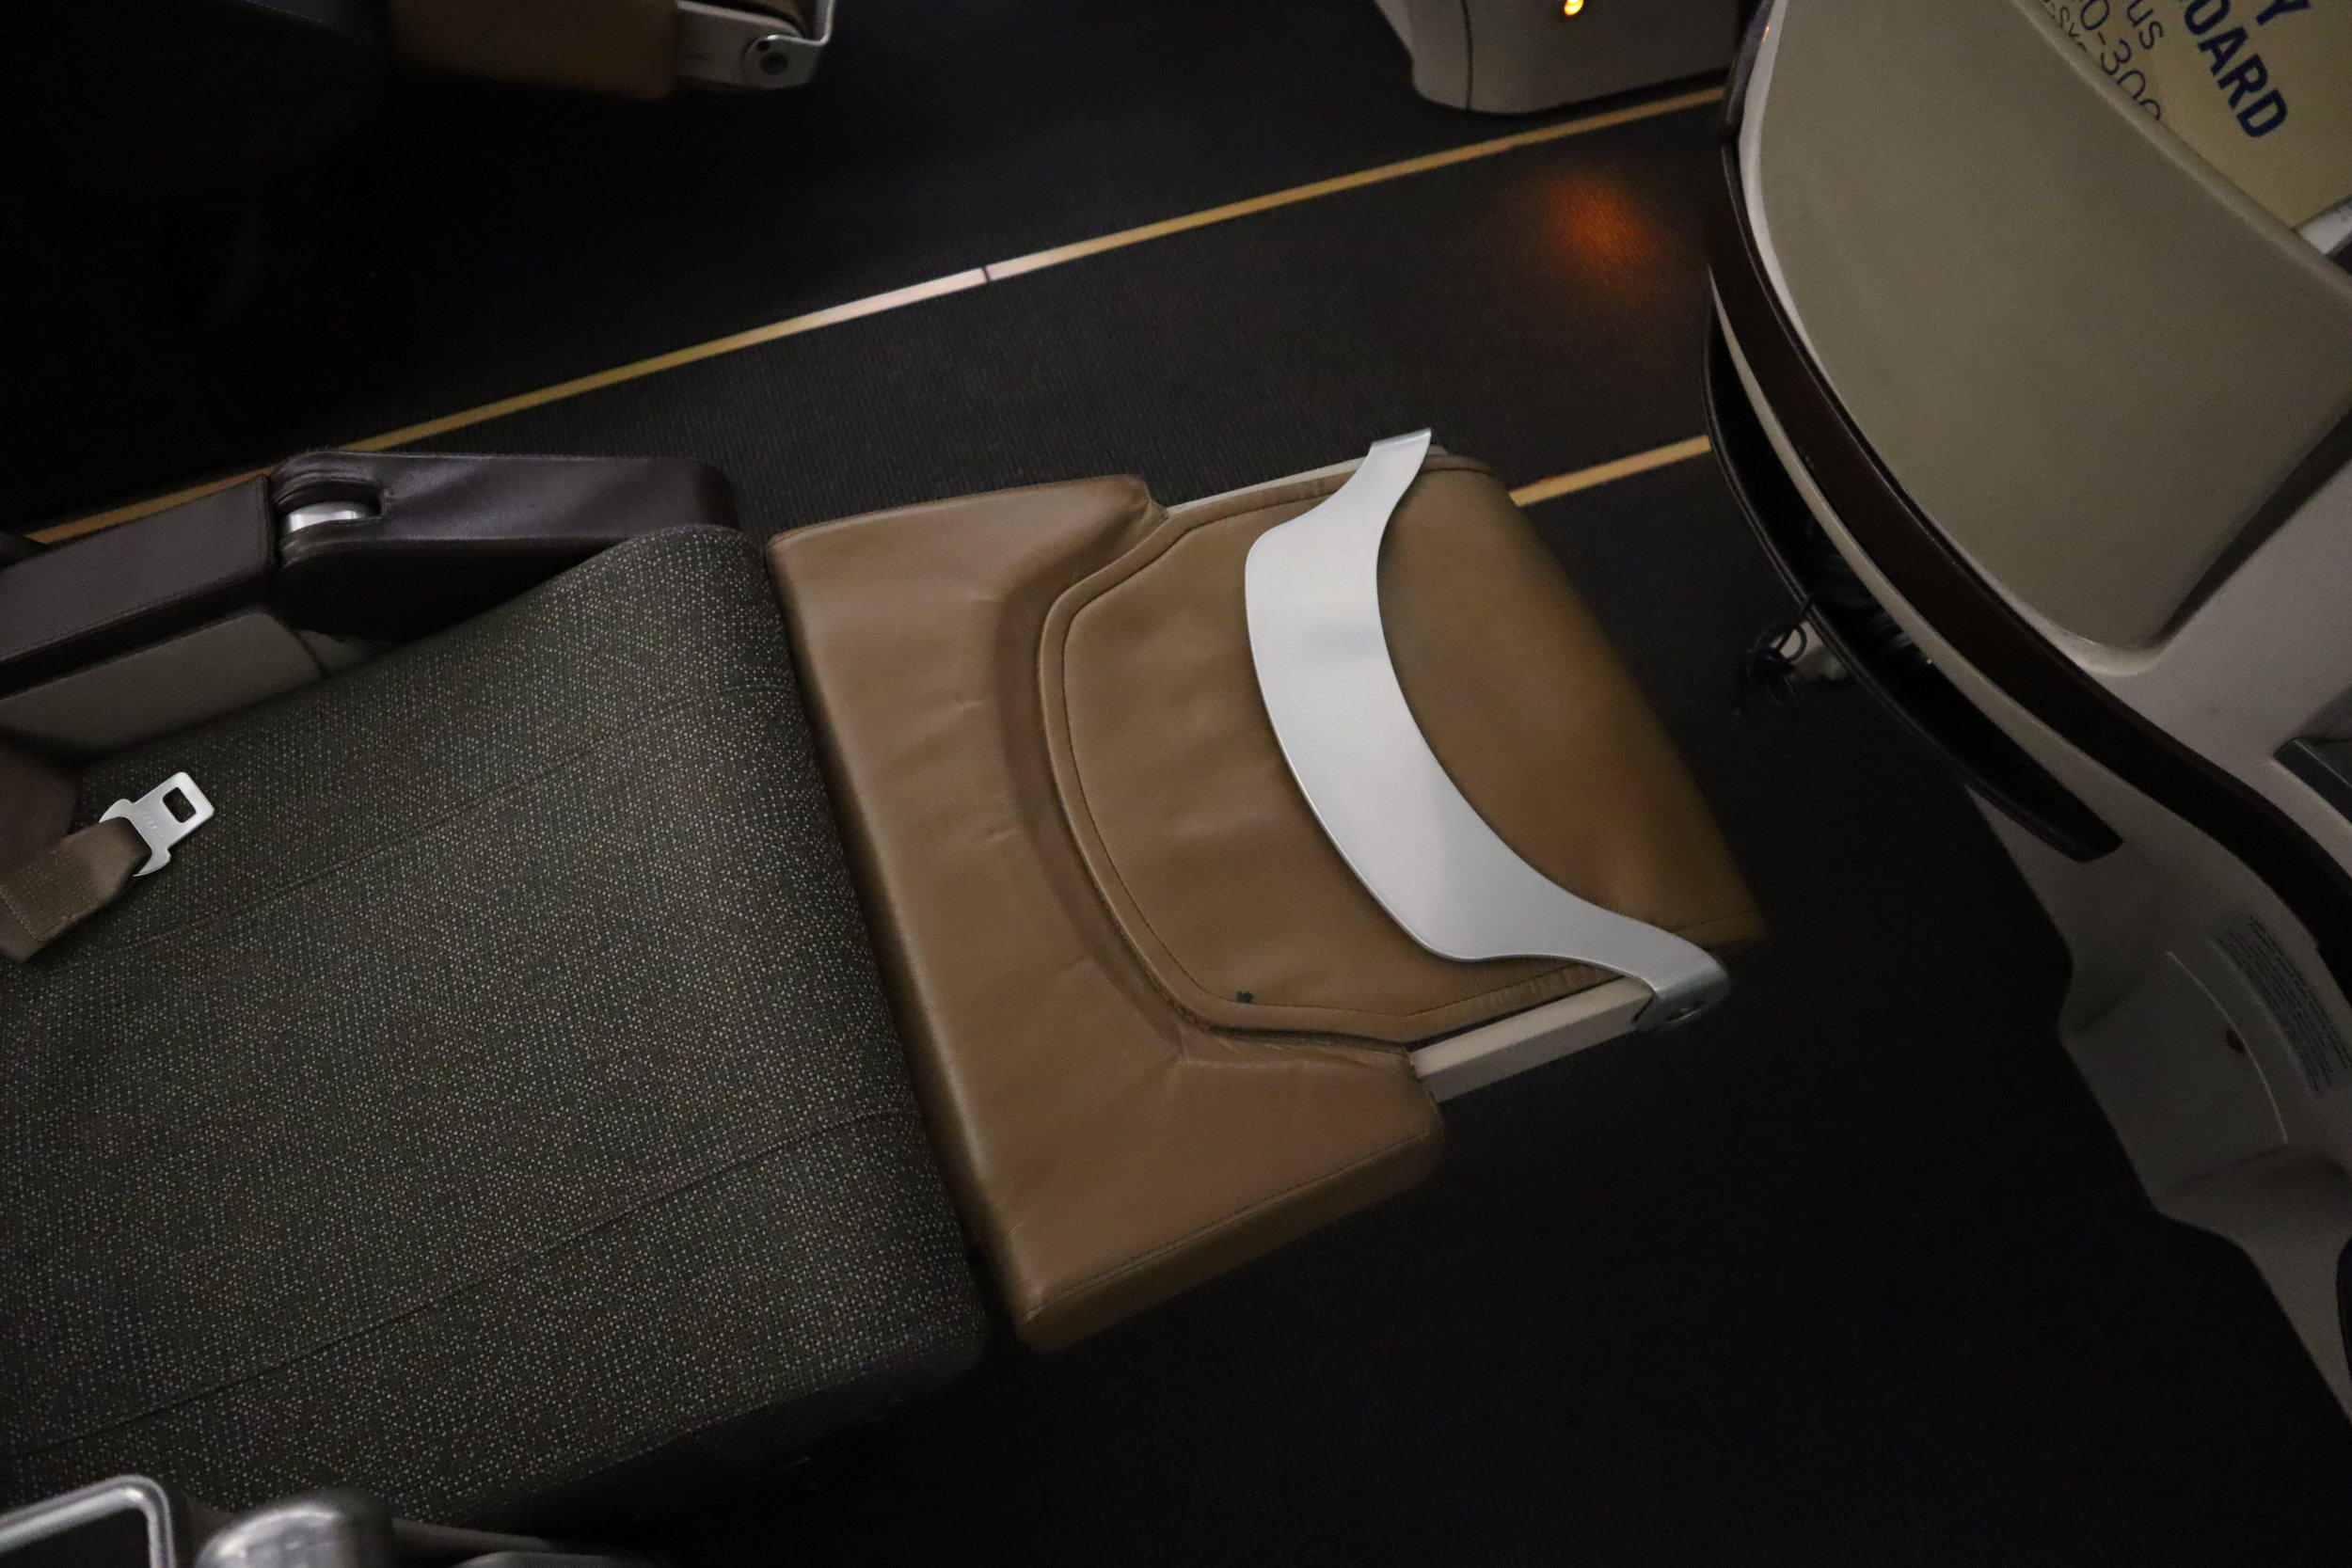 South African Airways business class – Lie-flat bed